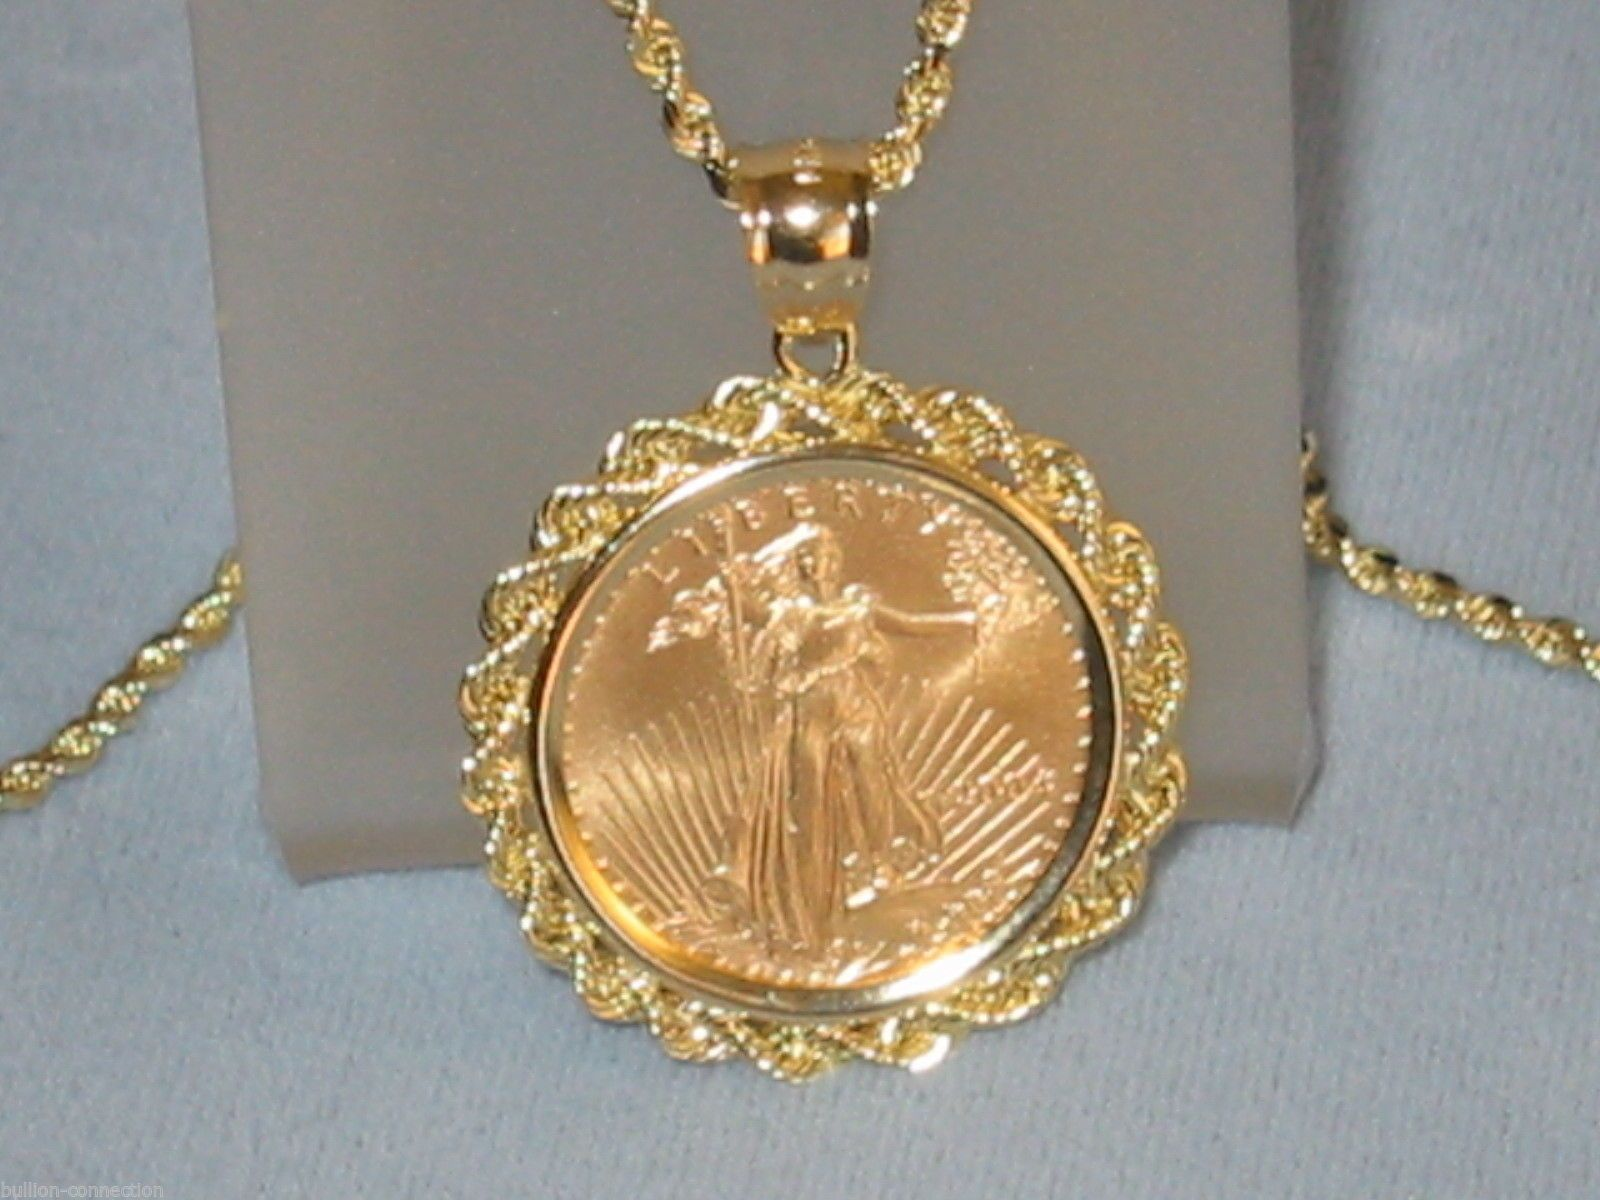 New 14kt Solid Gold Rope Bezel For 1 10 Oz American Gold Eagle Fits 14mm Coins Halskette Kette Hals